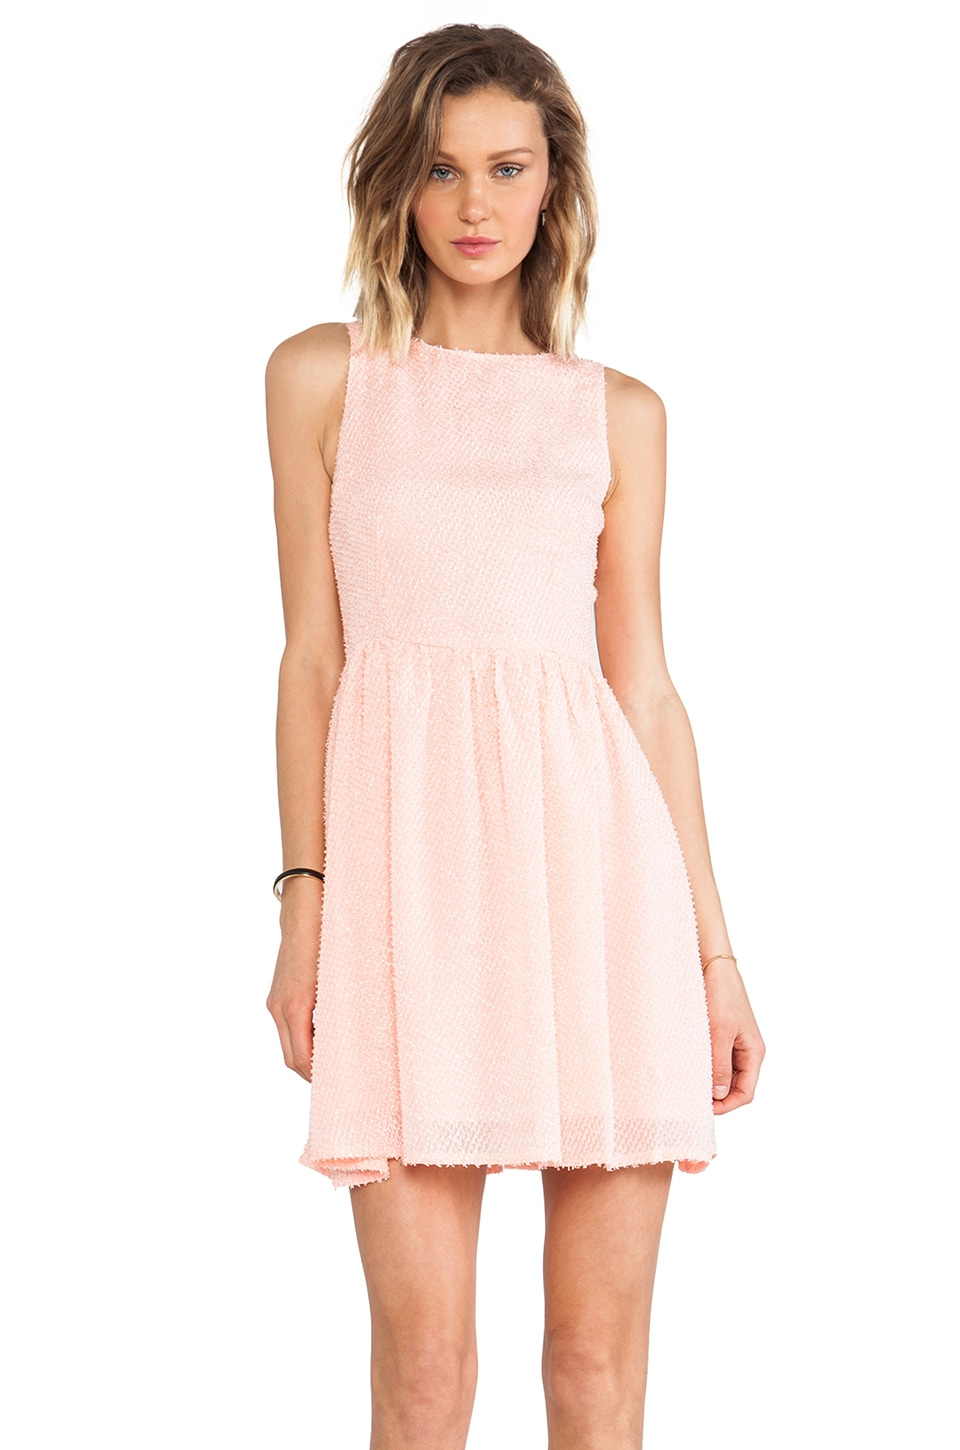 BB Dakota Lola Feathered Chiffon Dress in Peach